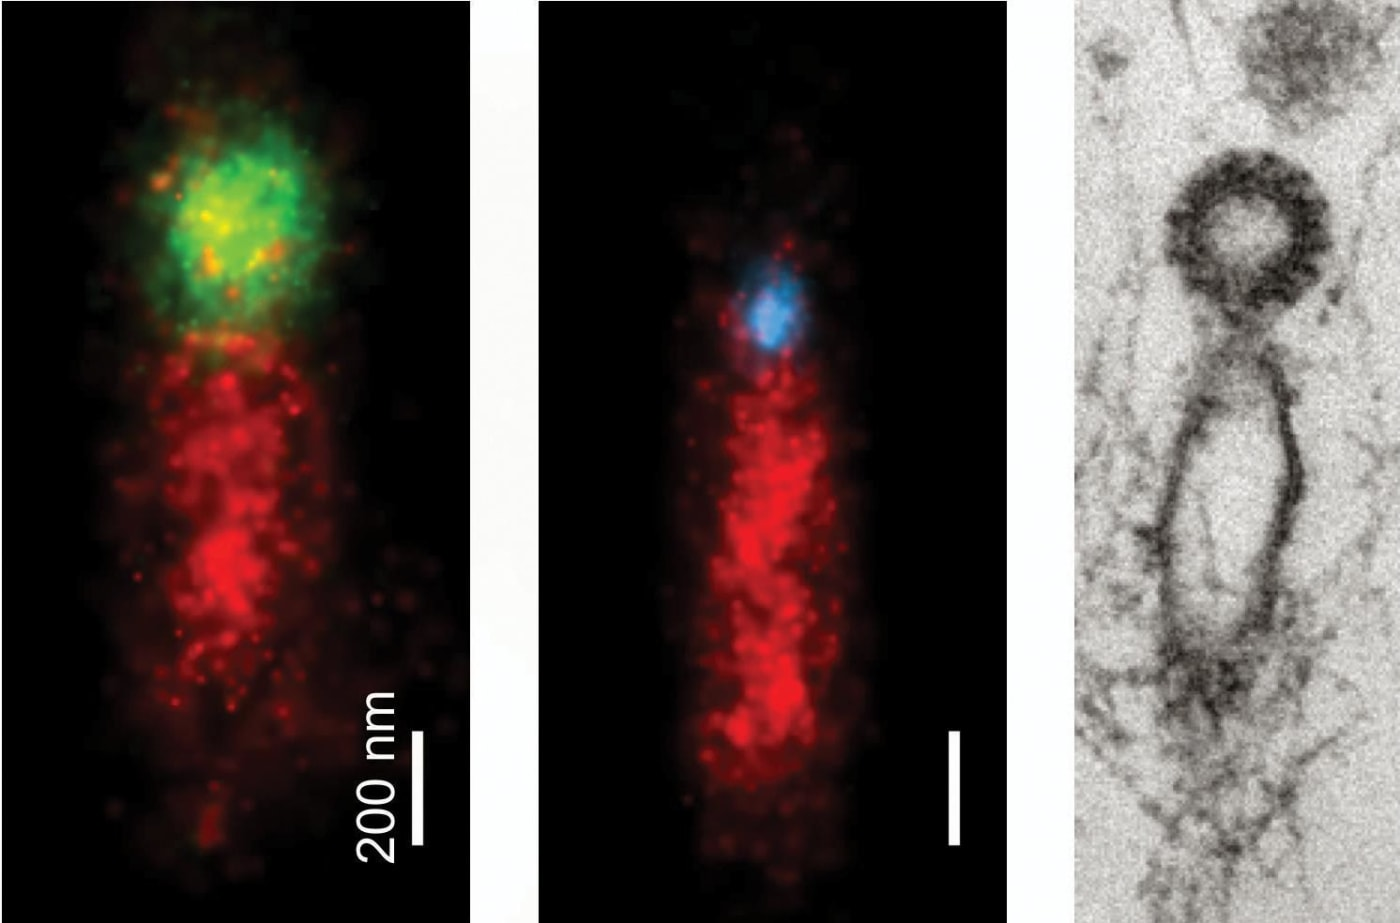 De Camilli and his collaborators used super-resolution microscopy to create these images of vesicles being reformed